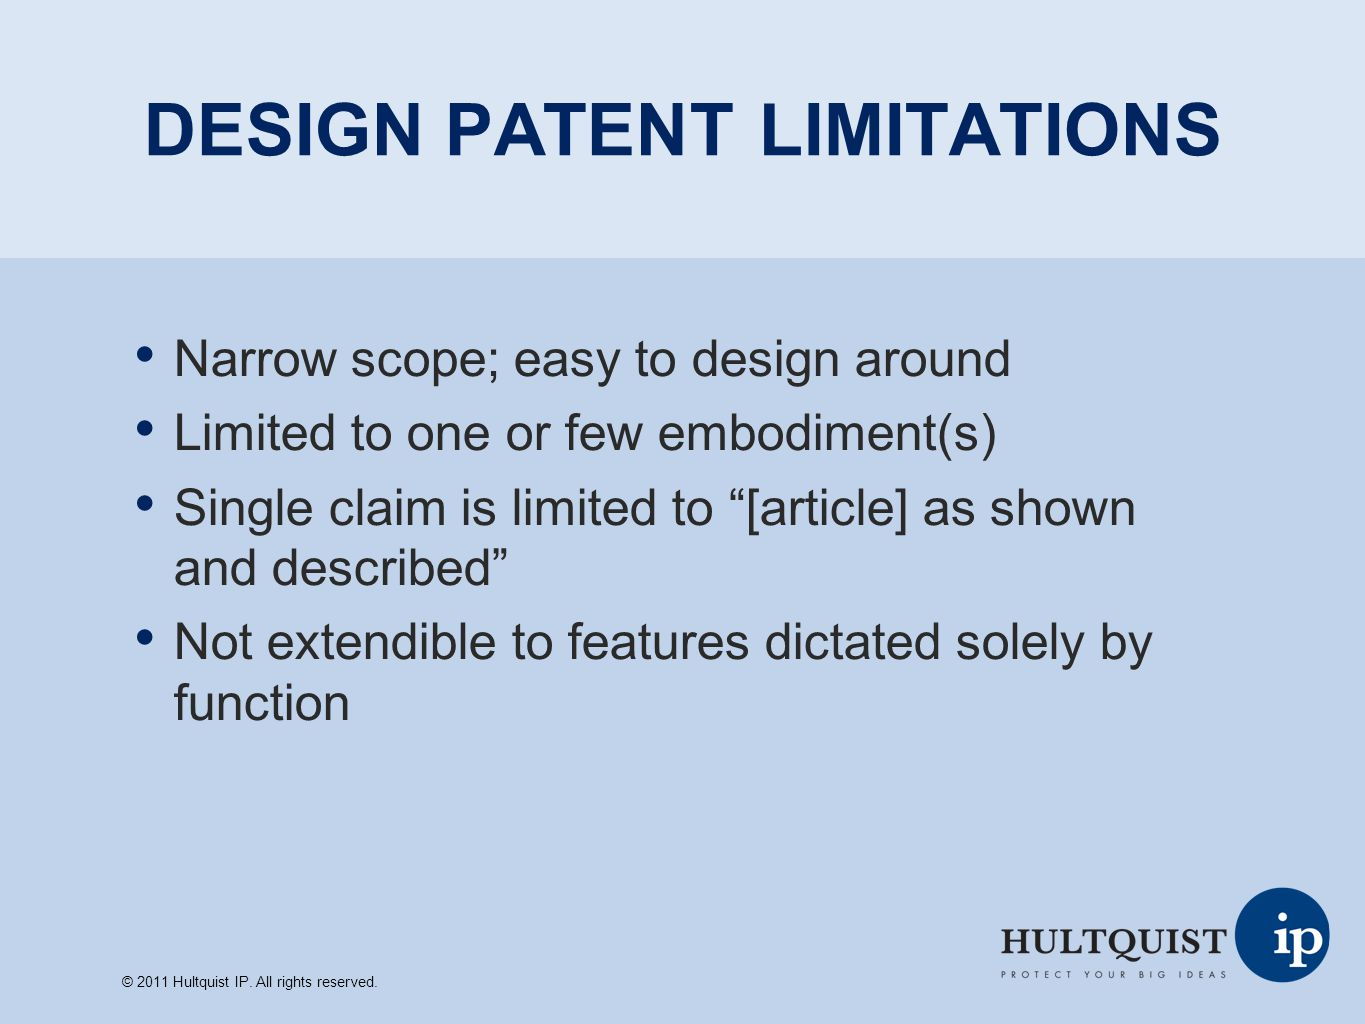 DESIGN PATENT LIMITATIONS